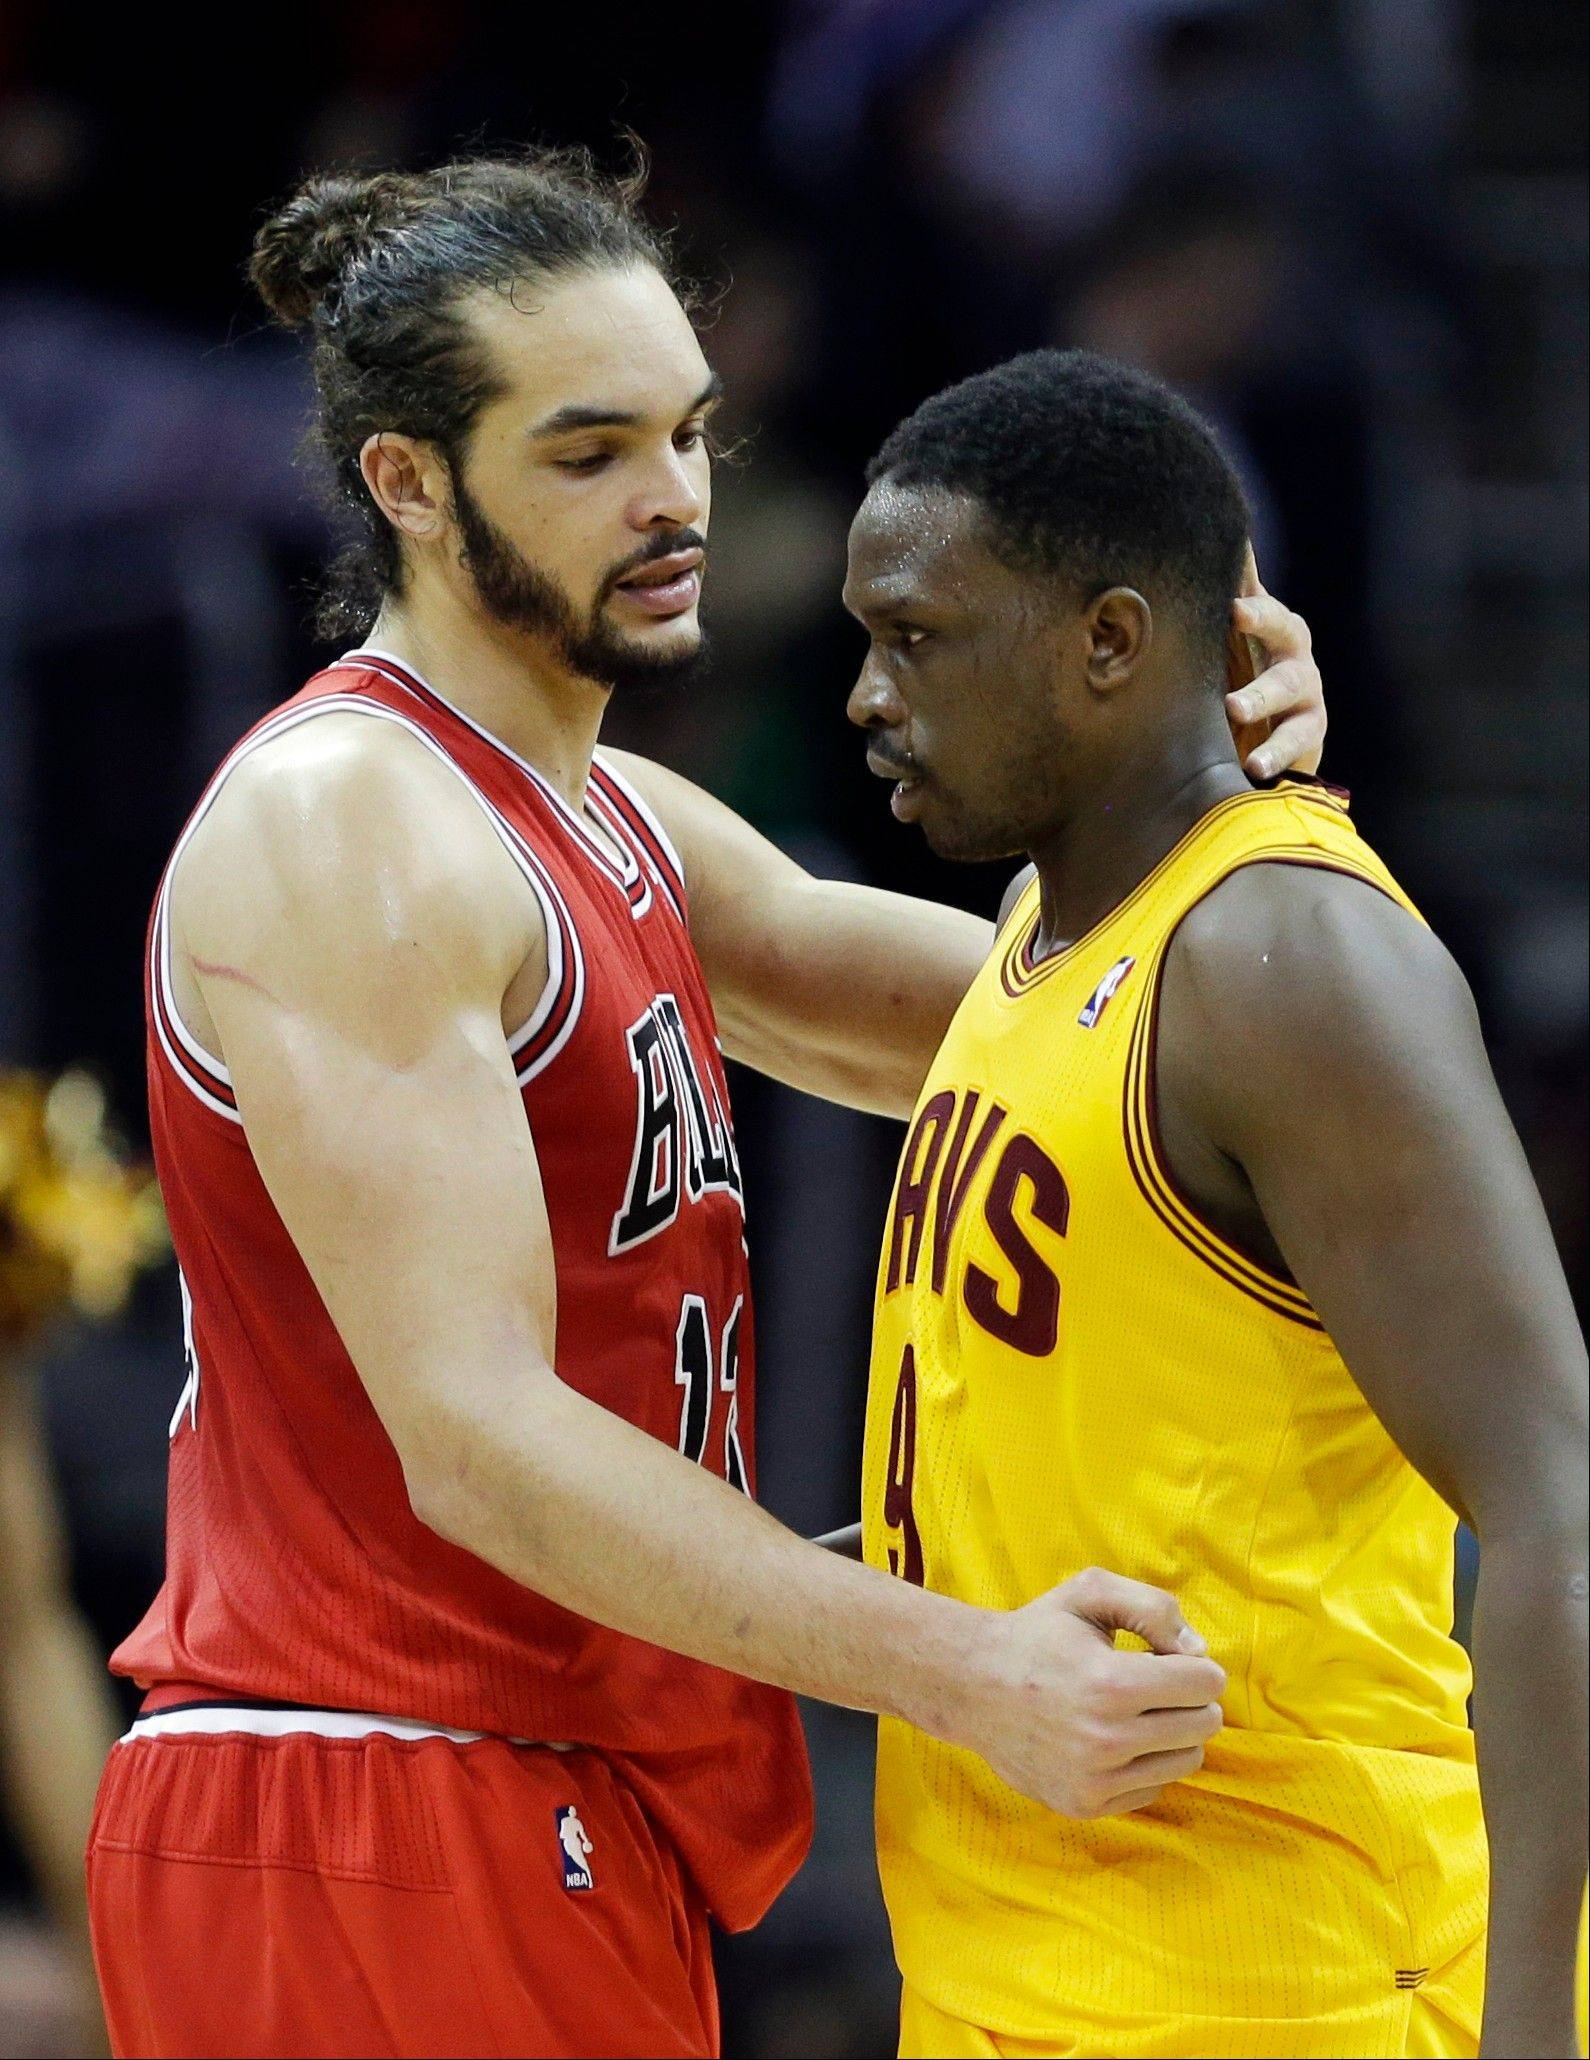 Tne Bulls' Joakim Noah embraces former teammate Luol Deng after the Bulls' victory over Deng and his new team, the Cleveland Cavaliers.